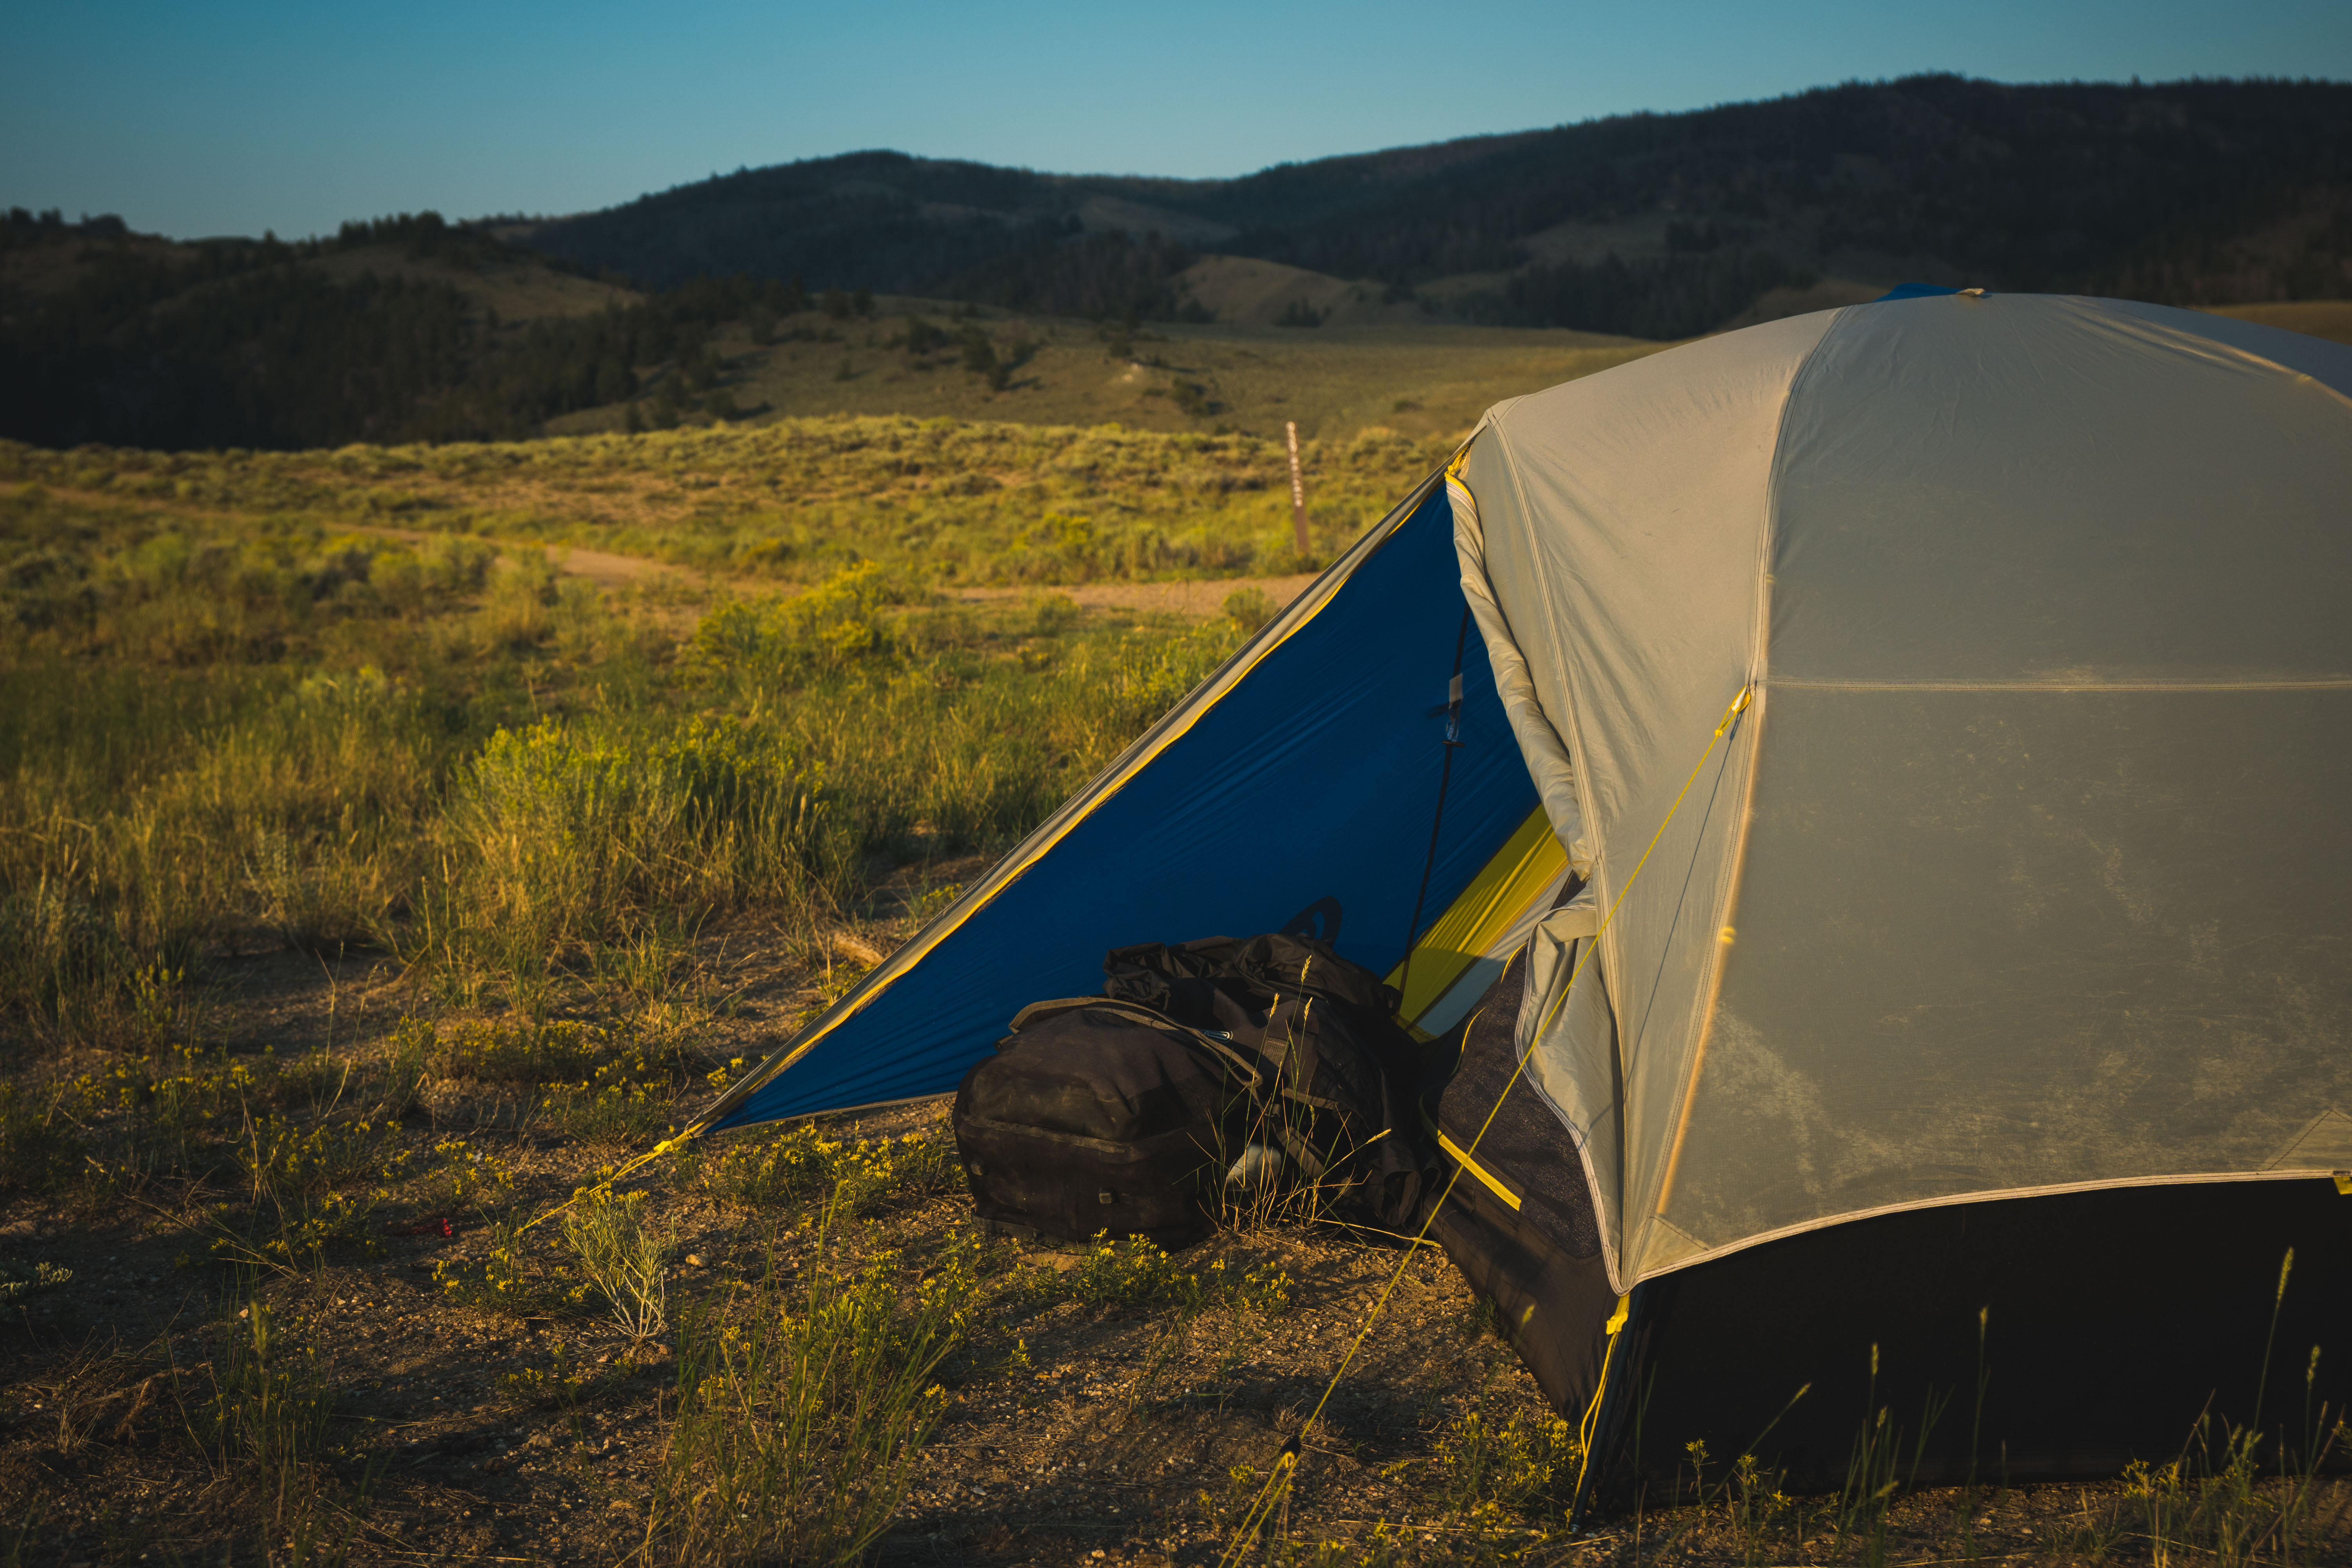 Sierra Designs Sweet Suite Tent Review & Sweet Suite! Unique Tent Design Gives Strong Results